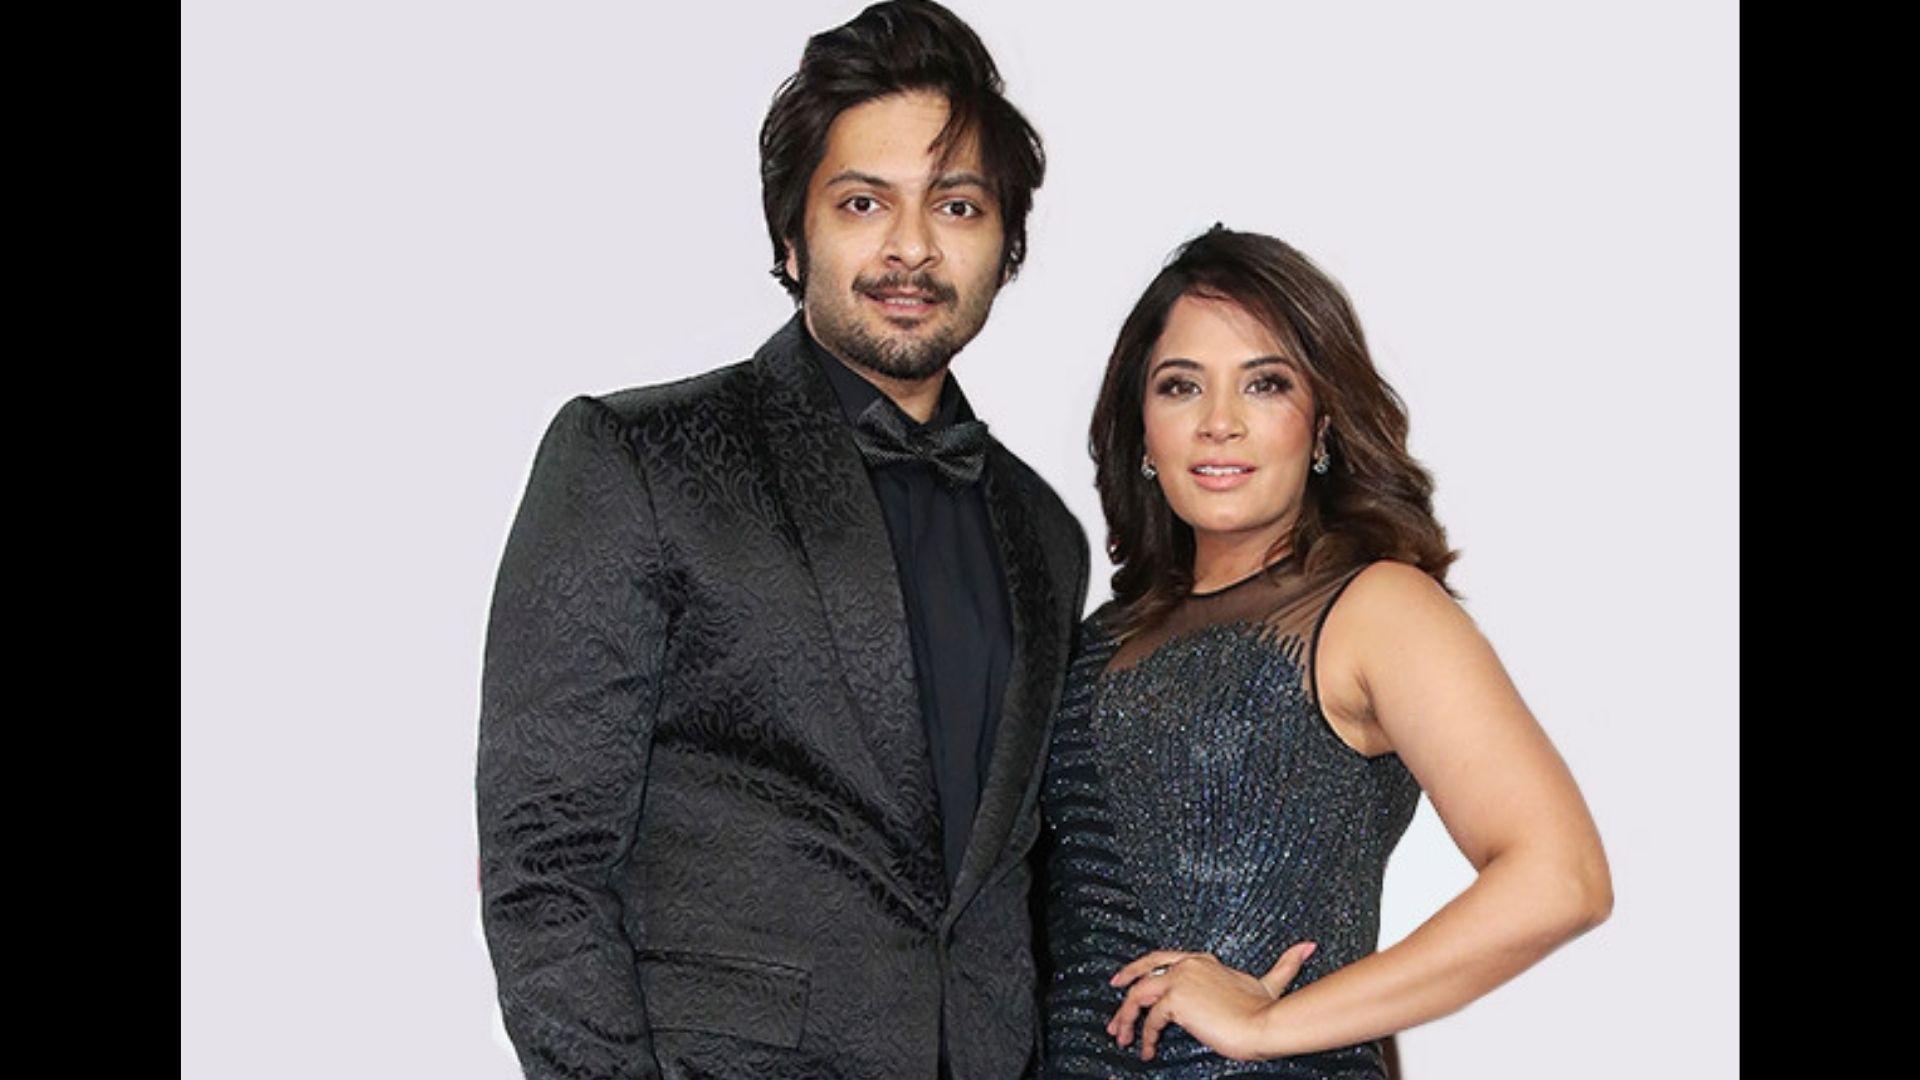 Richa Chadha Bids Goodbye To Twitter After Badly Slamming A Troll Who Passed Comments On Her Relationship With Ali Fazal; Says 'It's Toxic'